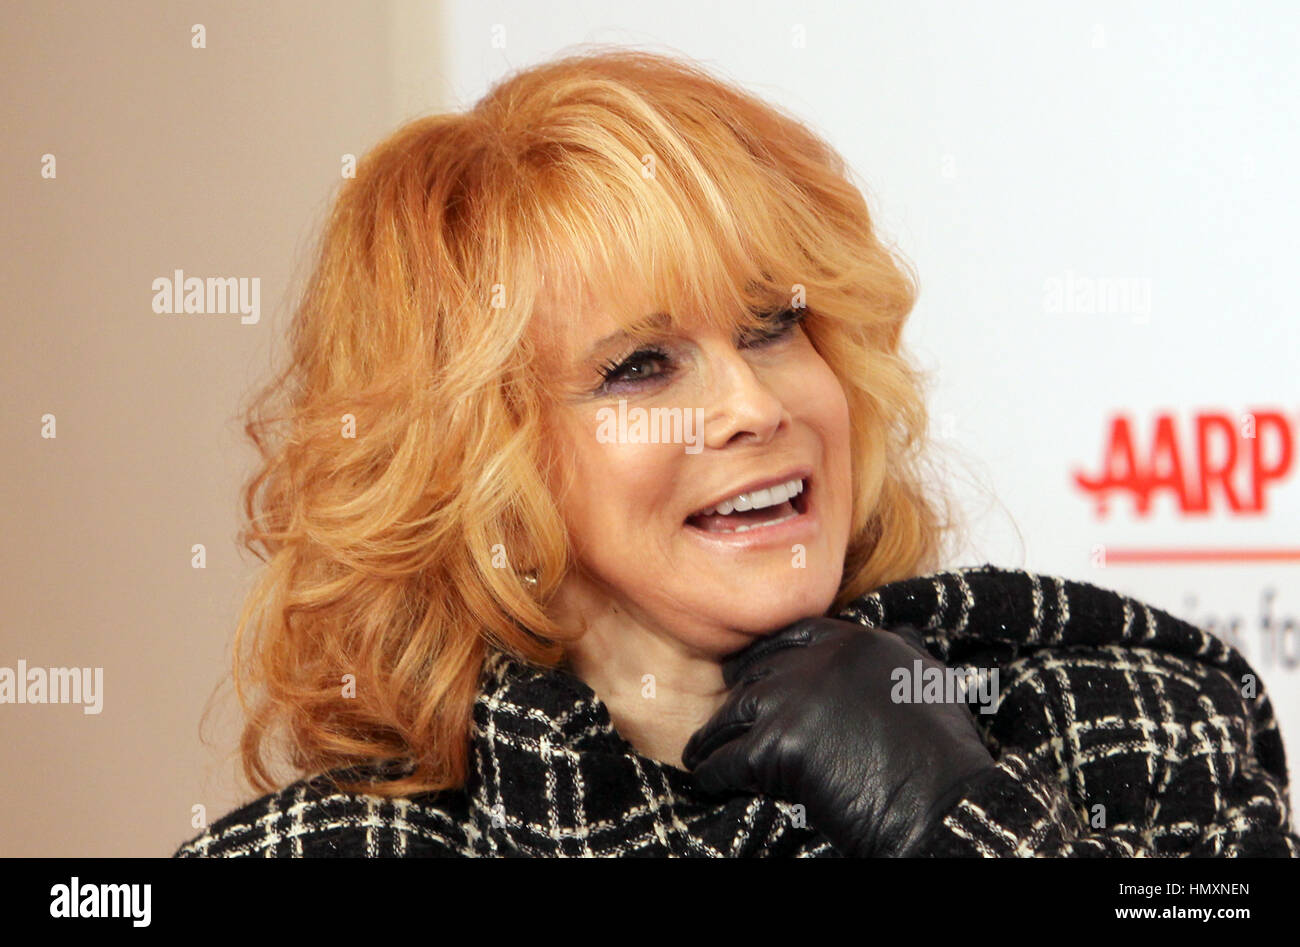 Beverly Hills, USA. 06th Feb, 2017. Ann-Margret, at 16th Annual AARP The Magazine's Movies for Grownups Awards, - Stock Image